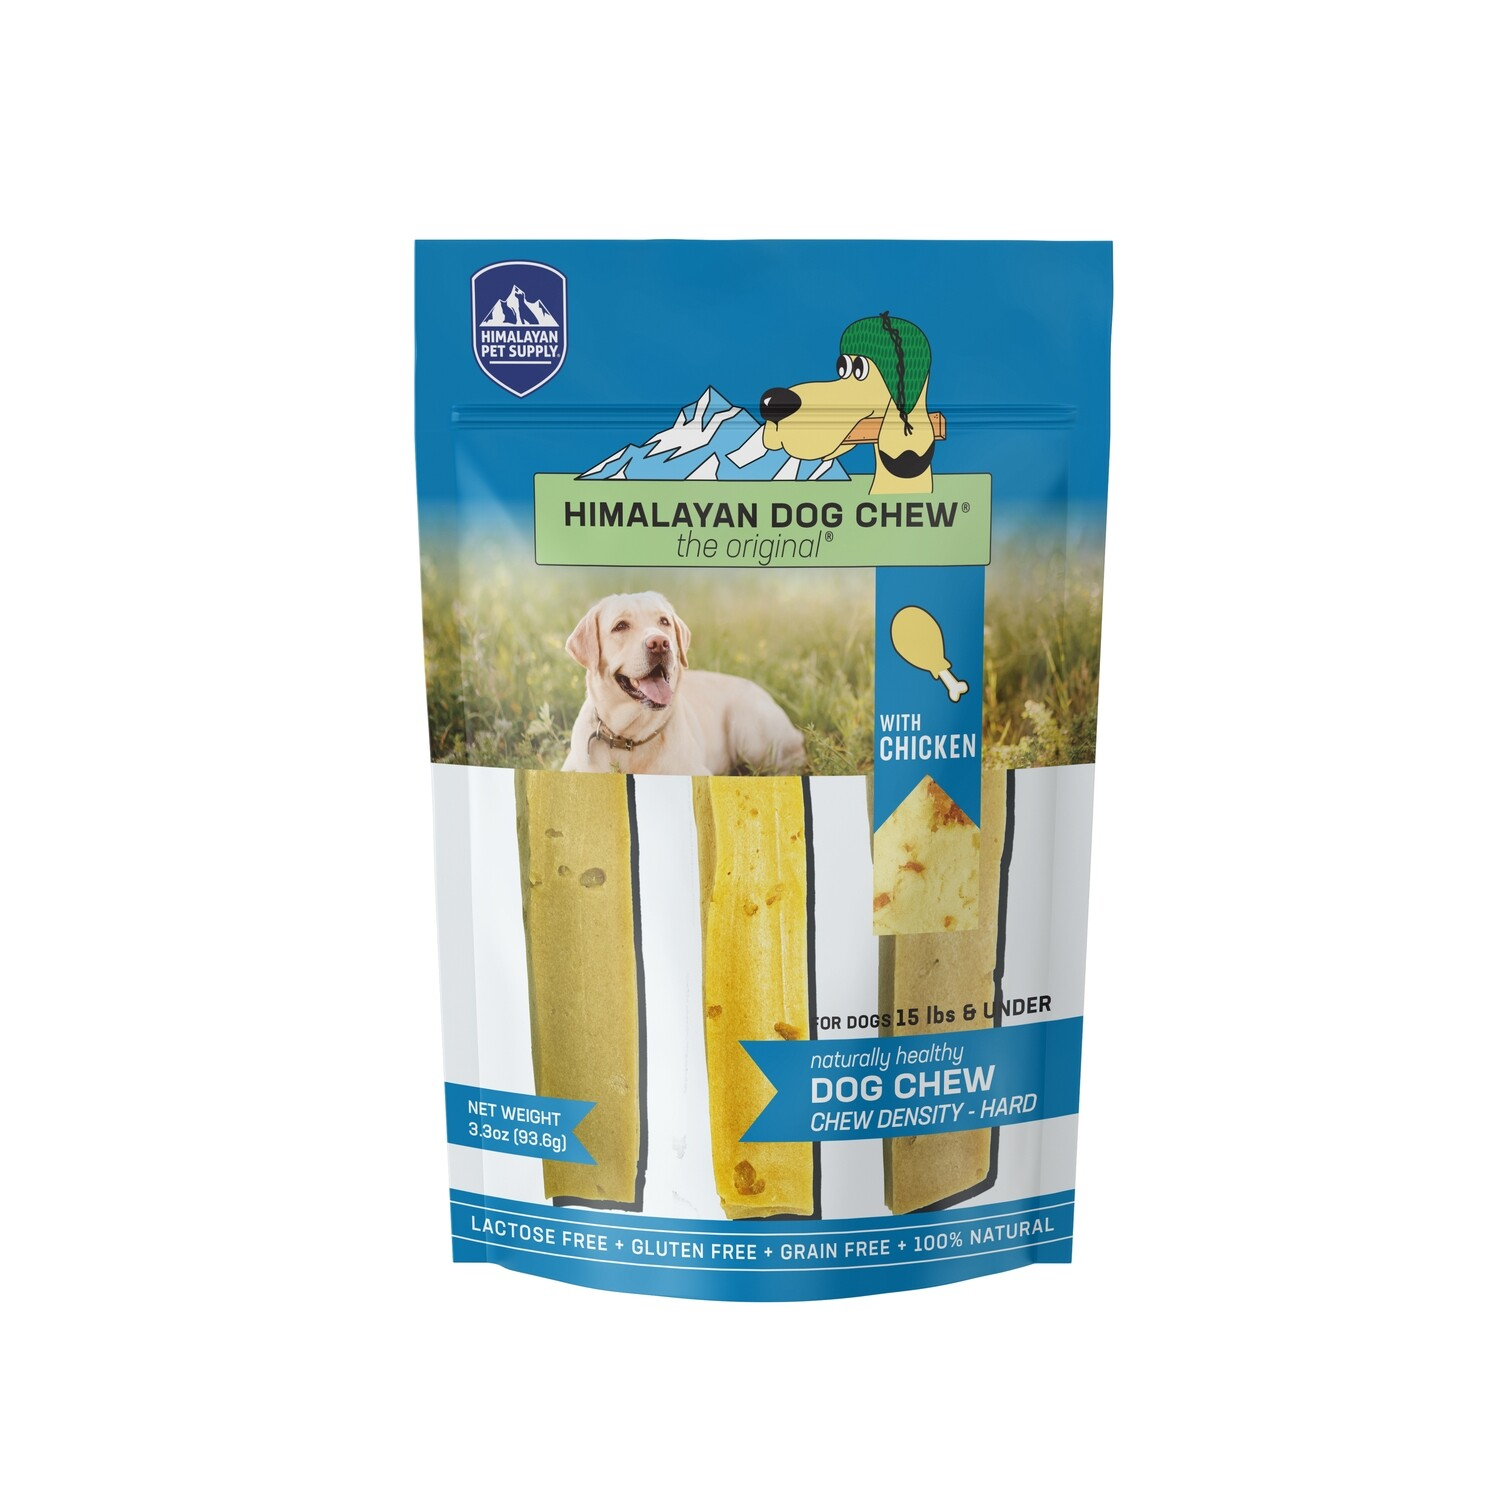 Himalayan Dog Chew Chicken <15lbs